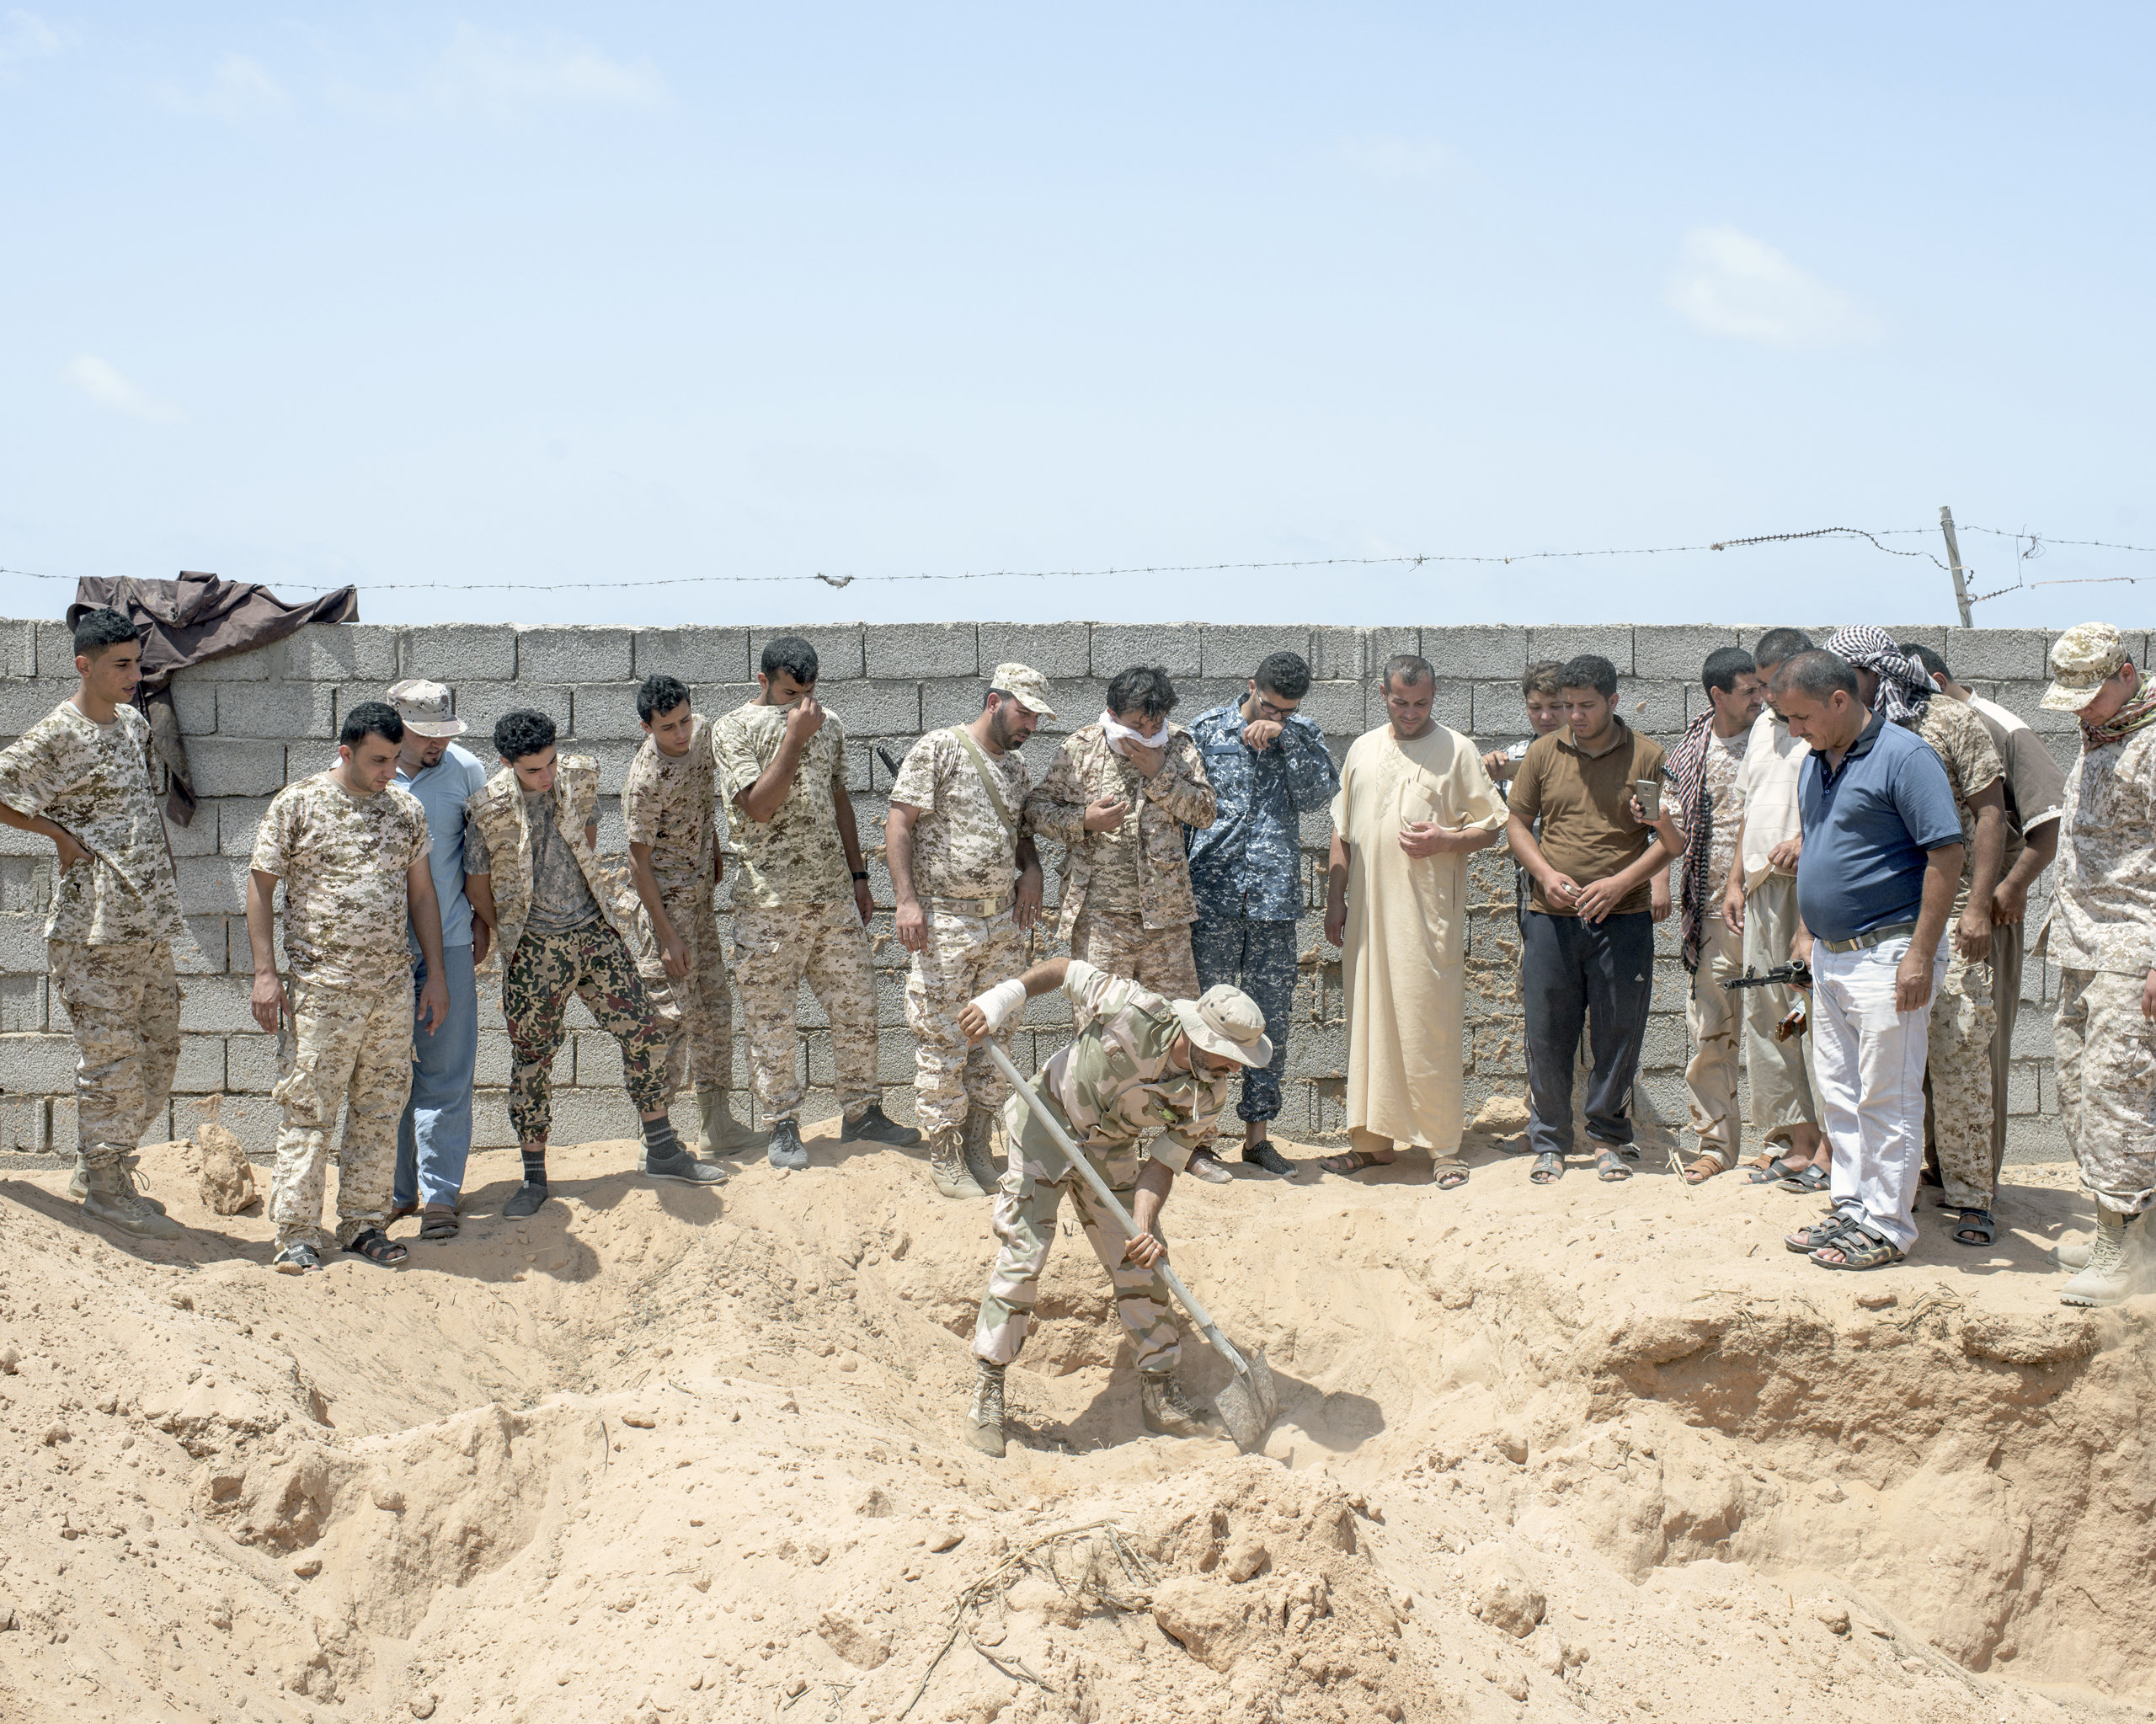 Libyan fighters unearth an ISIS mass grave, Sirt, Libya, July 2016